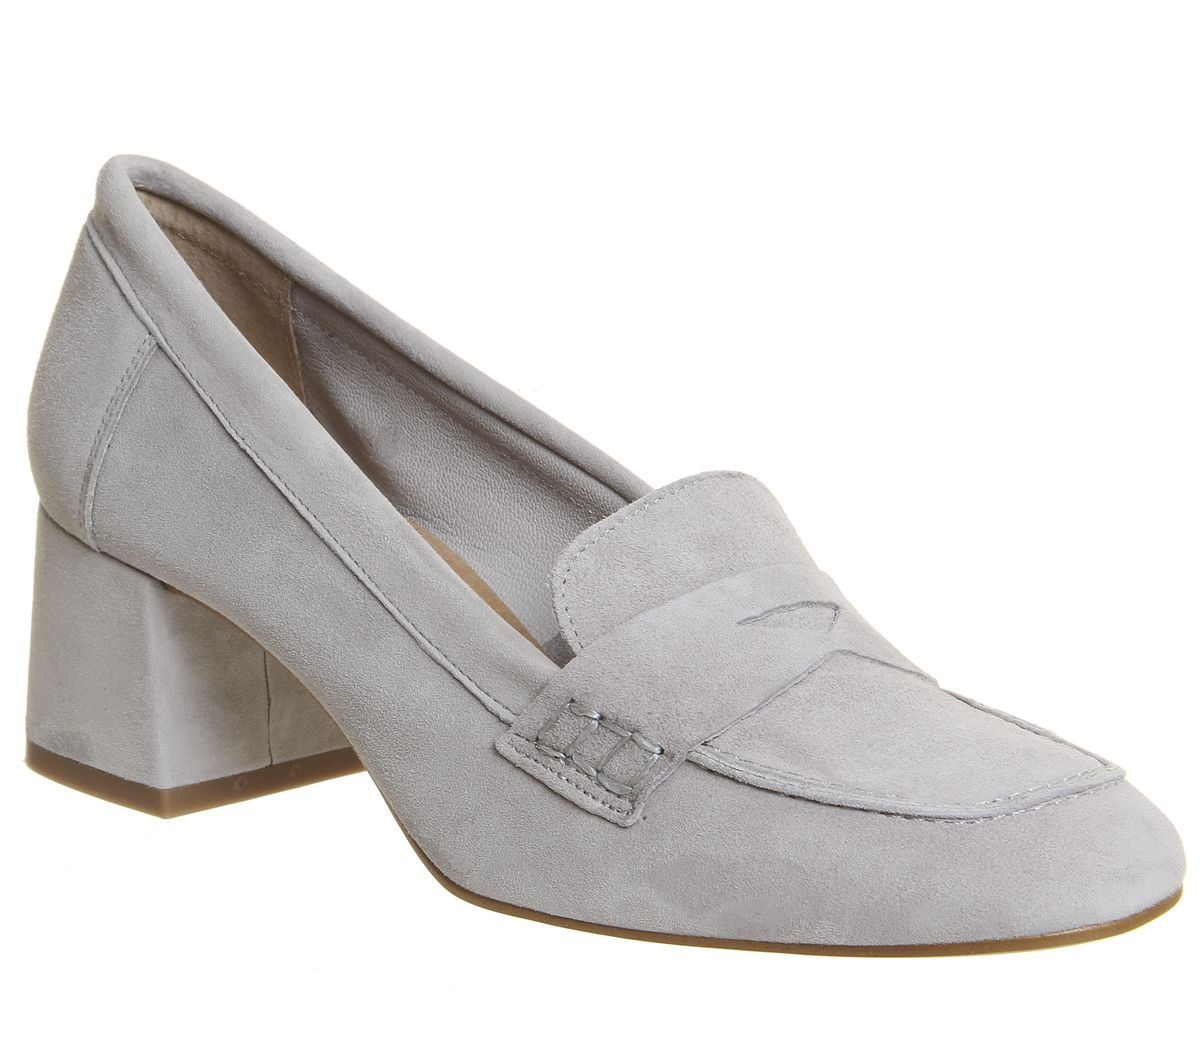 15eccccd93 Office Mod Block Heel Loafers Grey Suede - Mid Heels